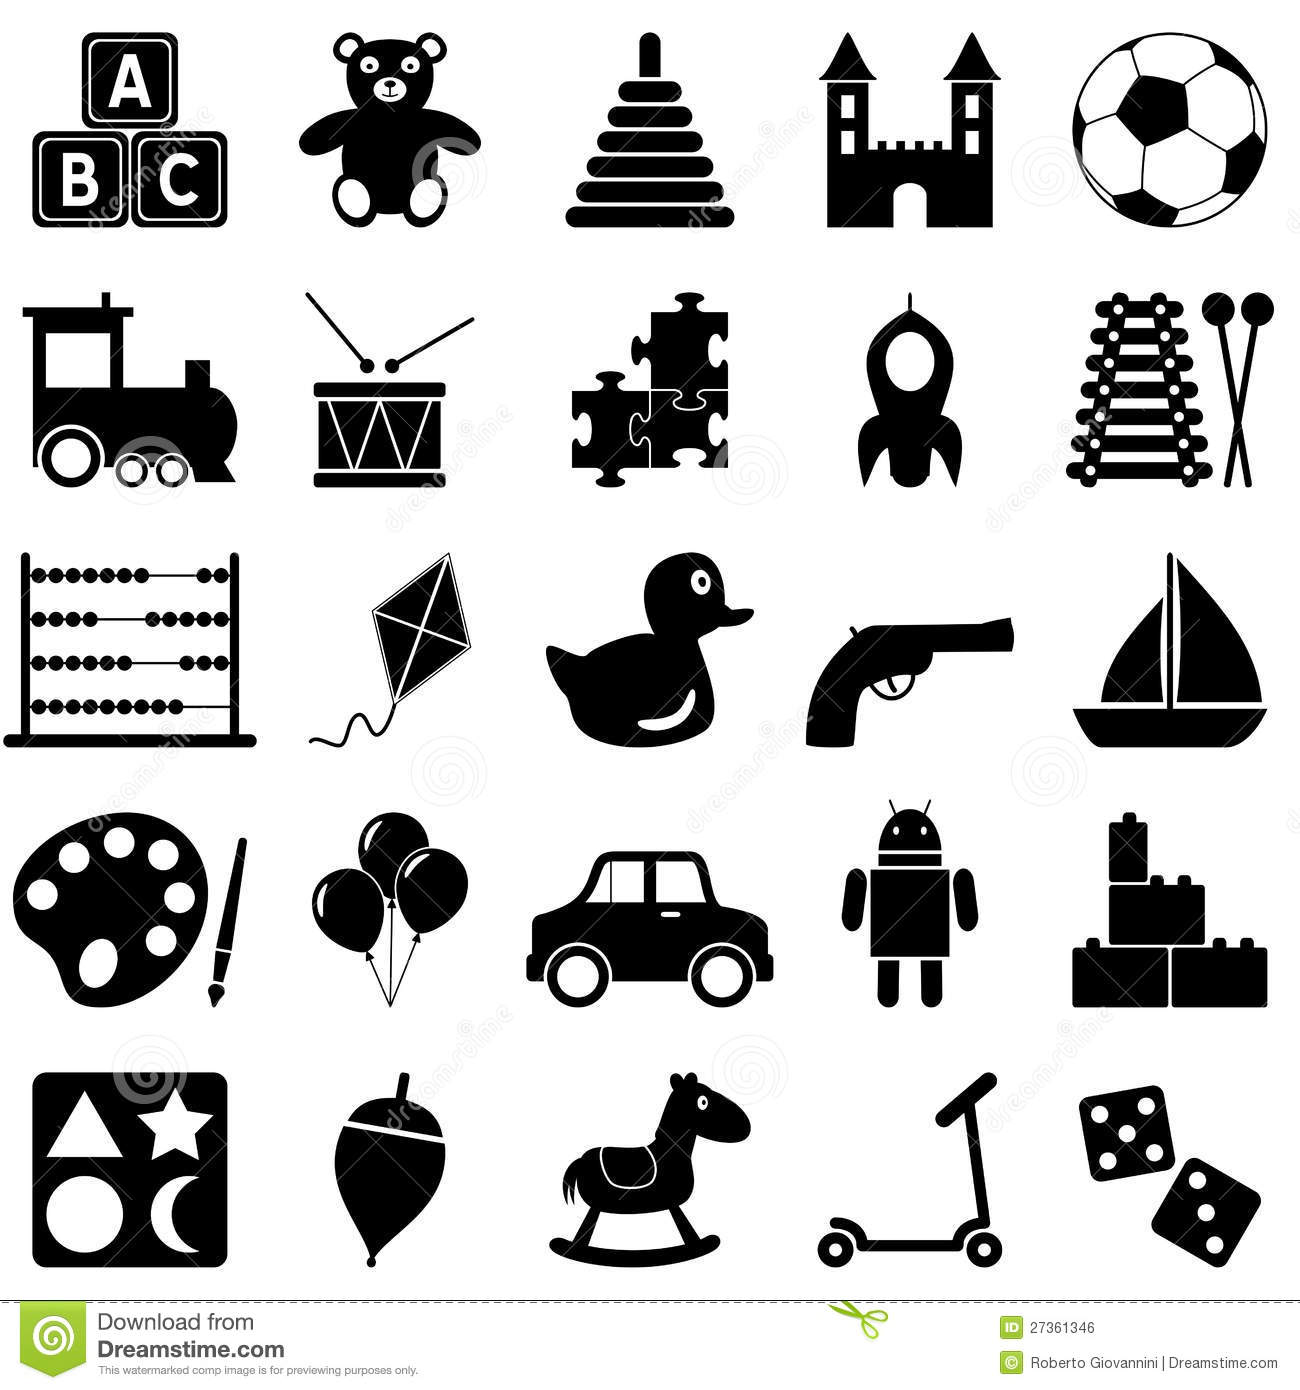 Toys Black And White Icons Stock Vector Illustration Of